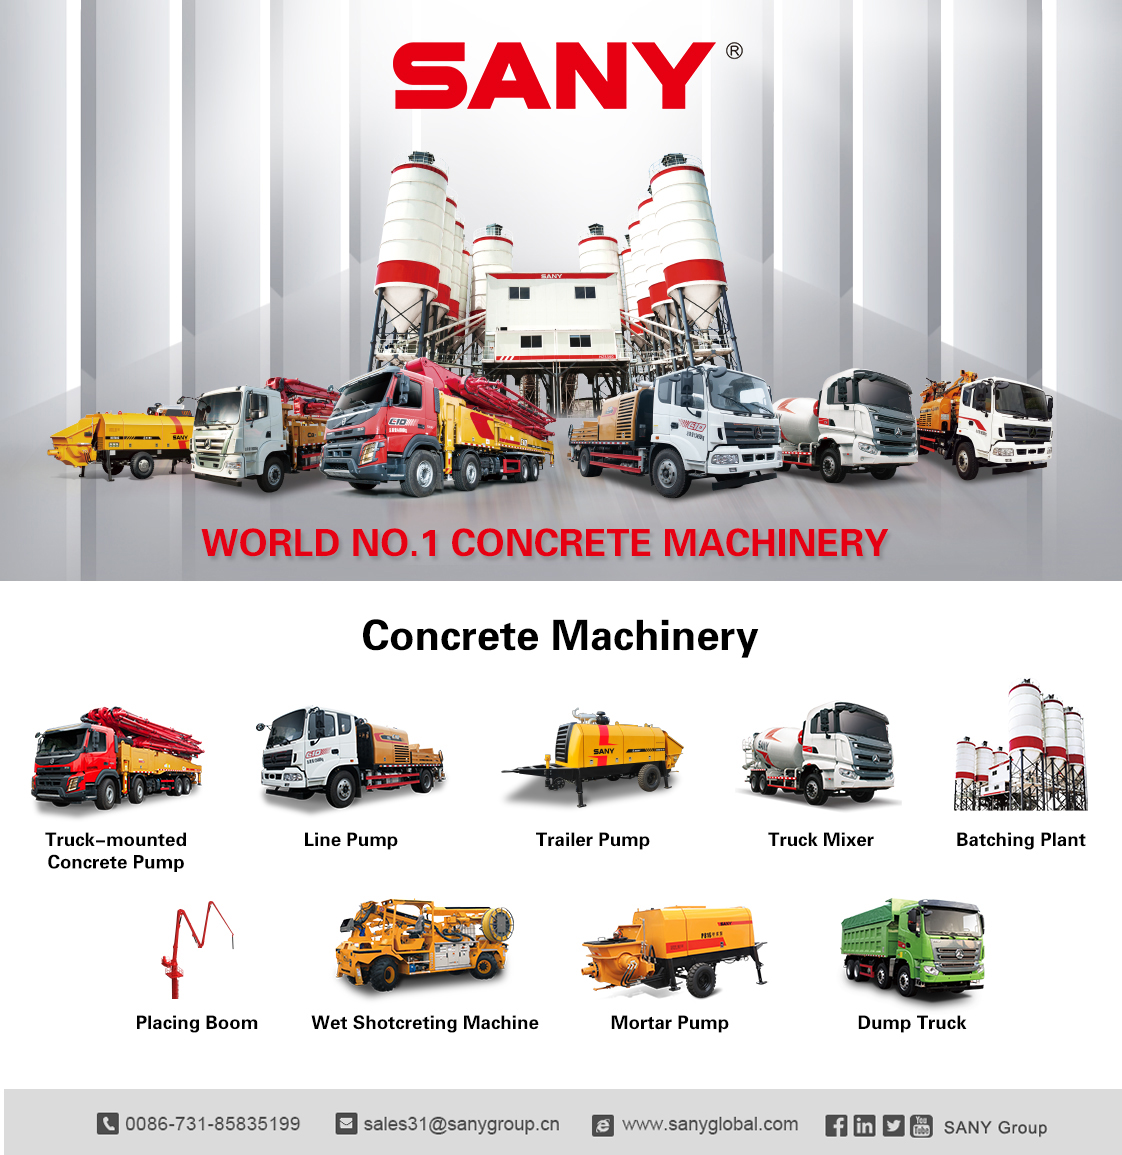 Quality strengthens quantity. SANY offers you a variety of professional solutions more than you expect!  Part 2 #SanyProduct https://t.co/fHEYPWF2FQ https://t.co/a2FHijWobO